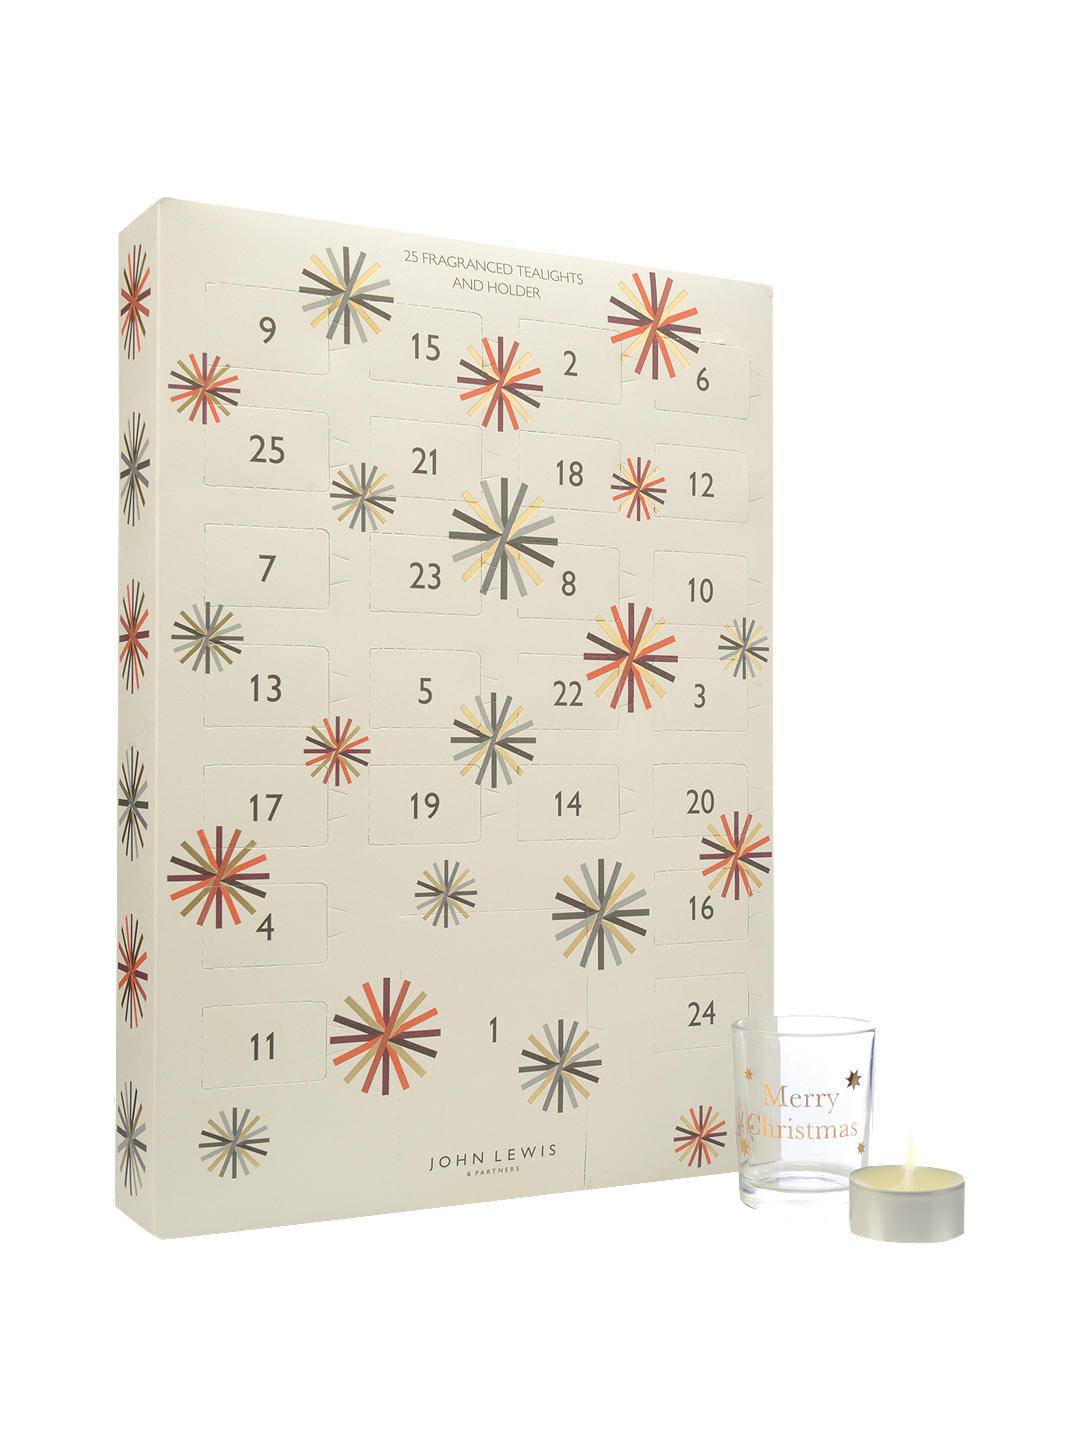 Scented tealight candles abound in this Christmas advent calendar dedicated to scented candle